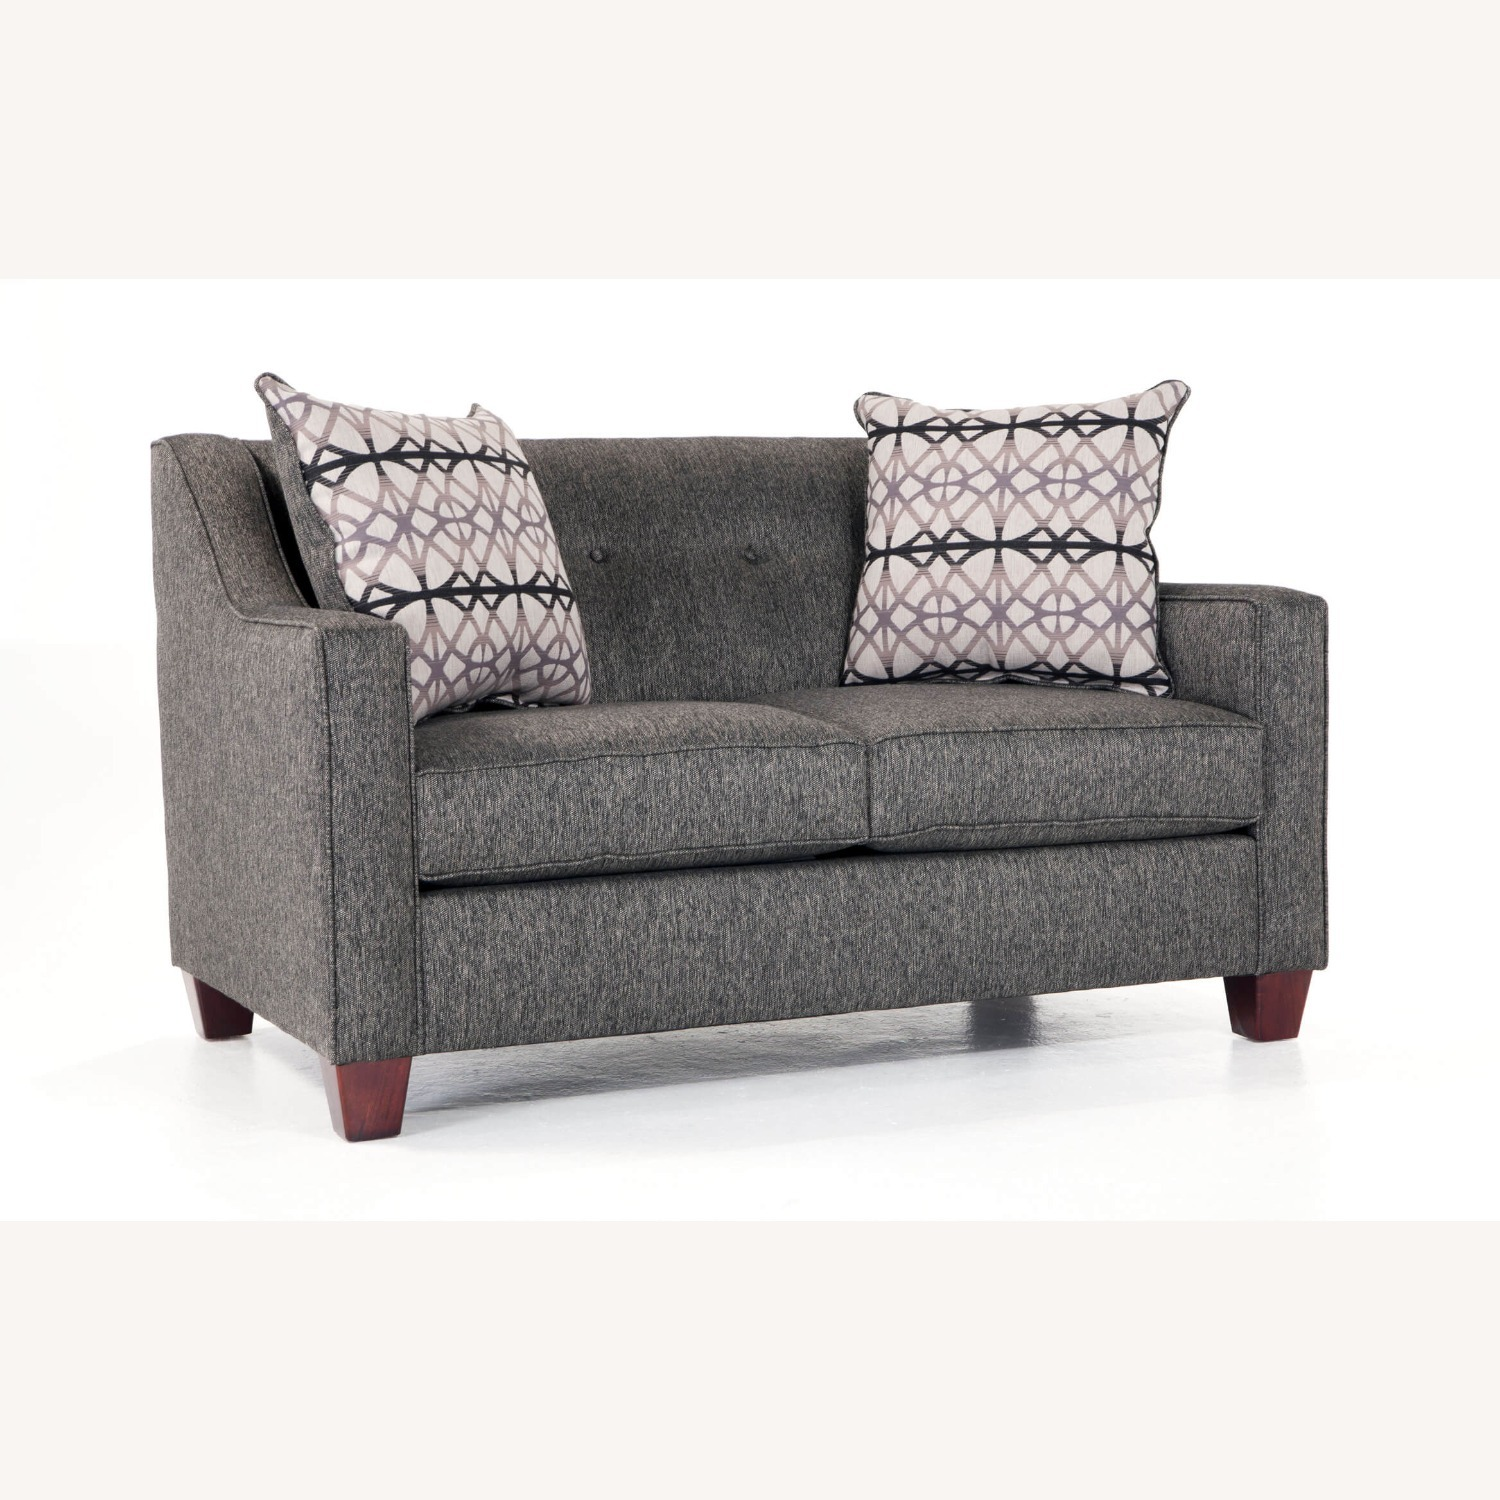 Bob's Discount Stylish & Comfortable Loveseat - image-2